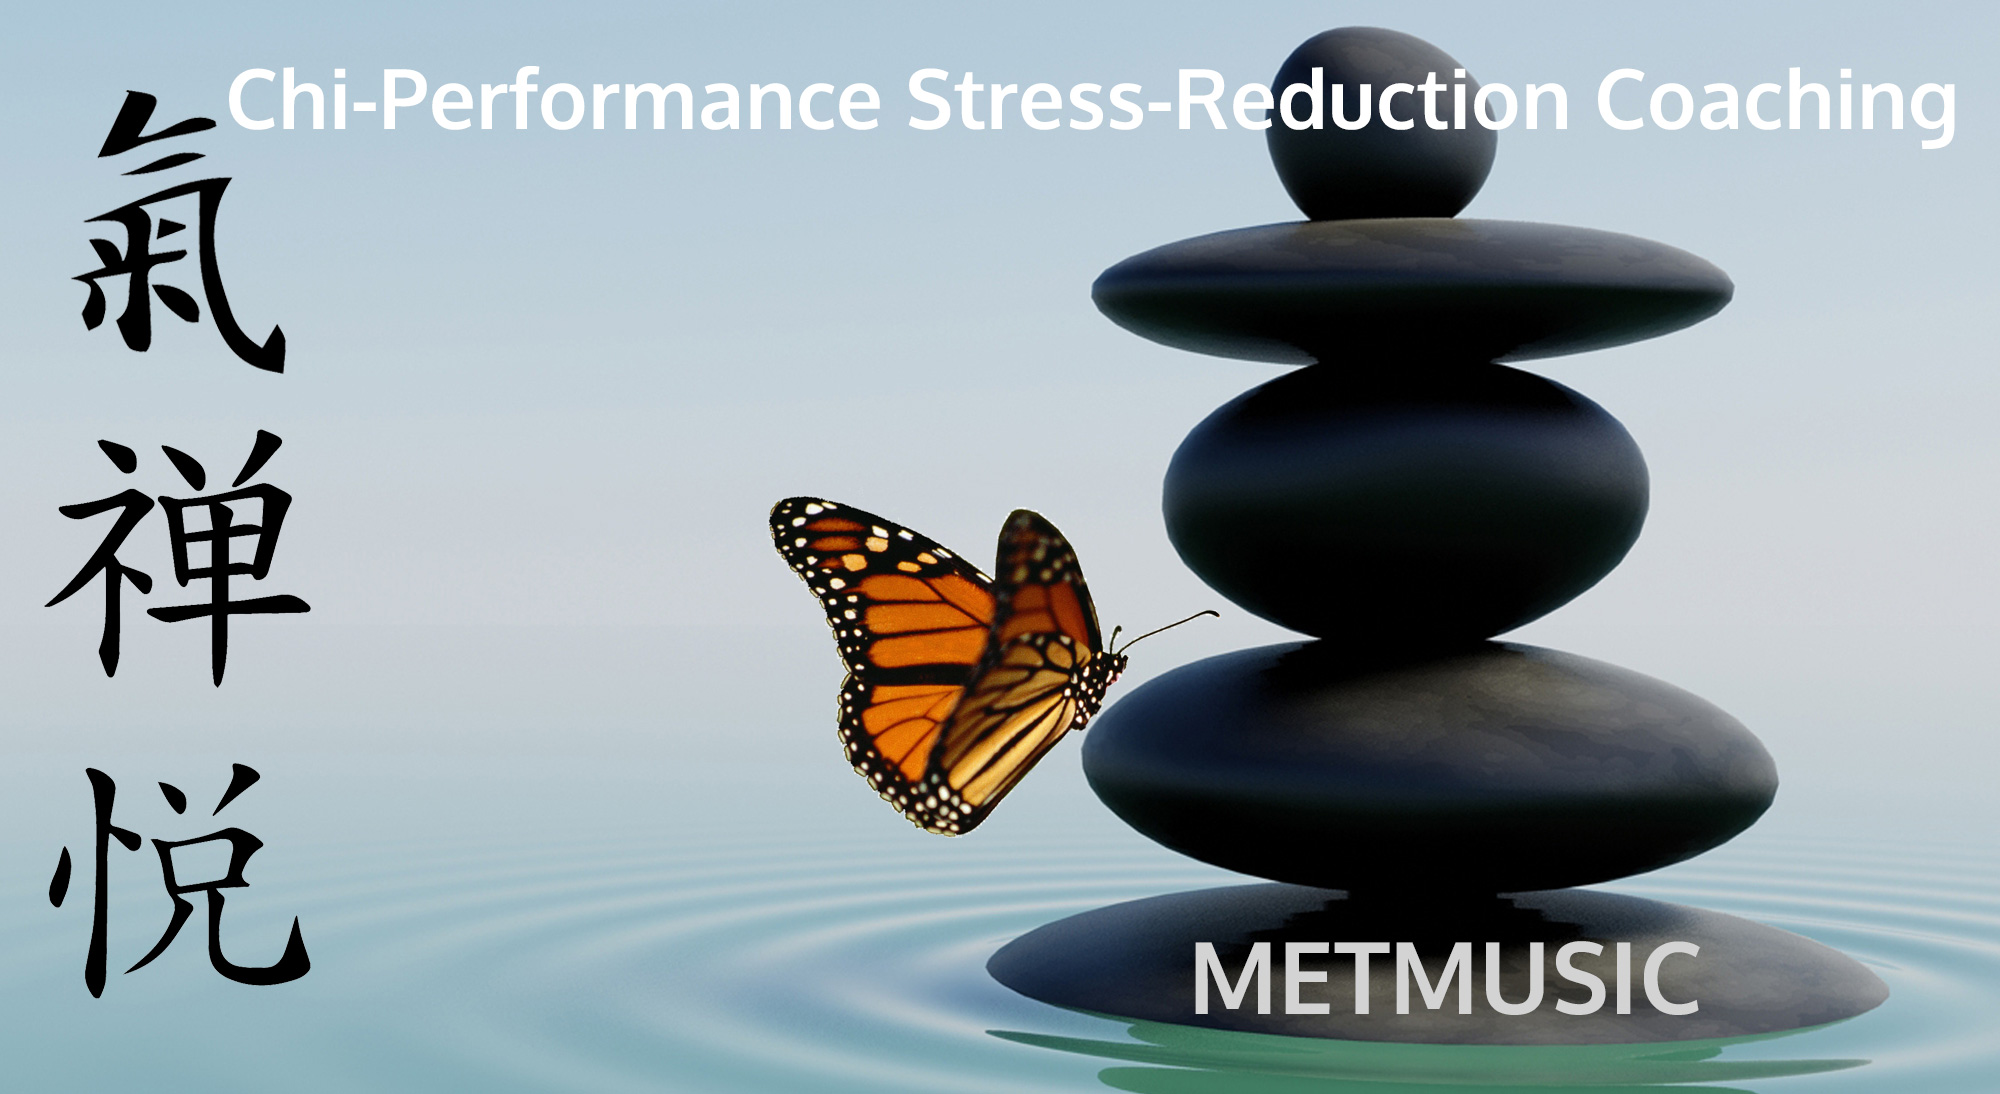 metmusic-nl-stress-reduction coaching